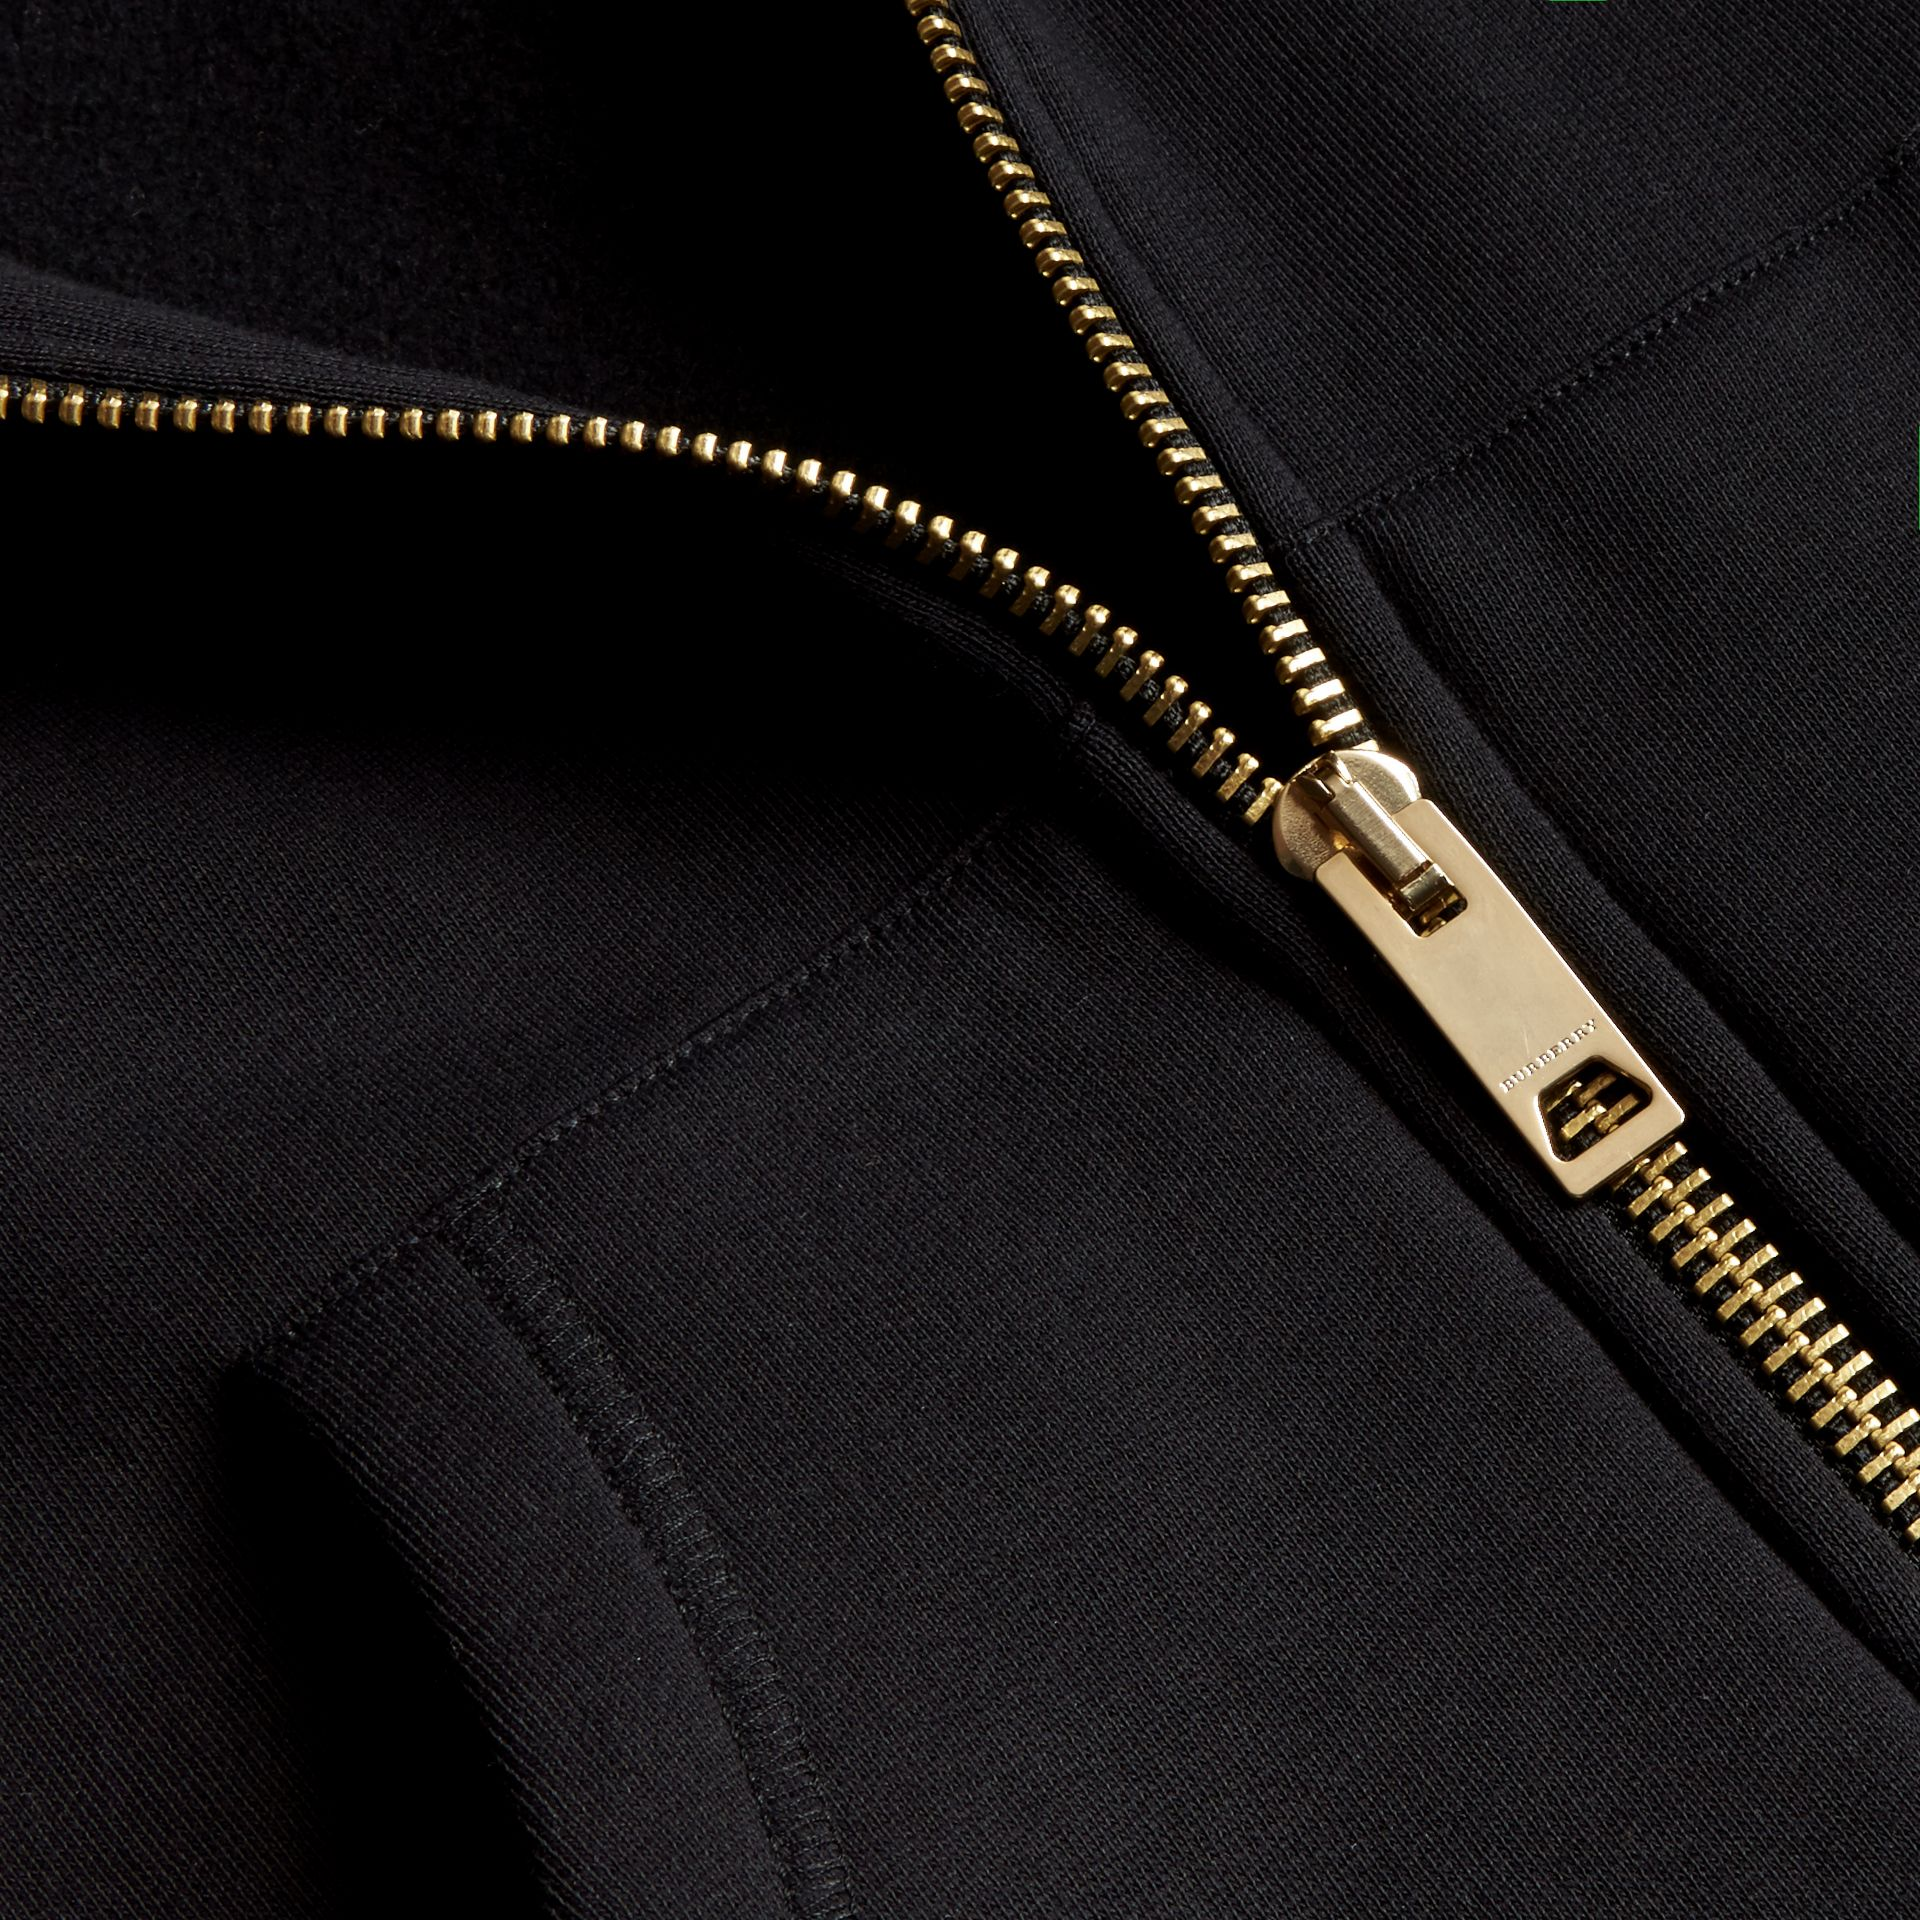 Zip-front Oversize Cotton Jersey Sweatshirt with Hood in Black - Women | Burberry - gallery image 2